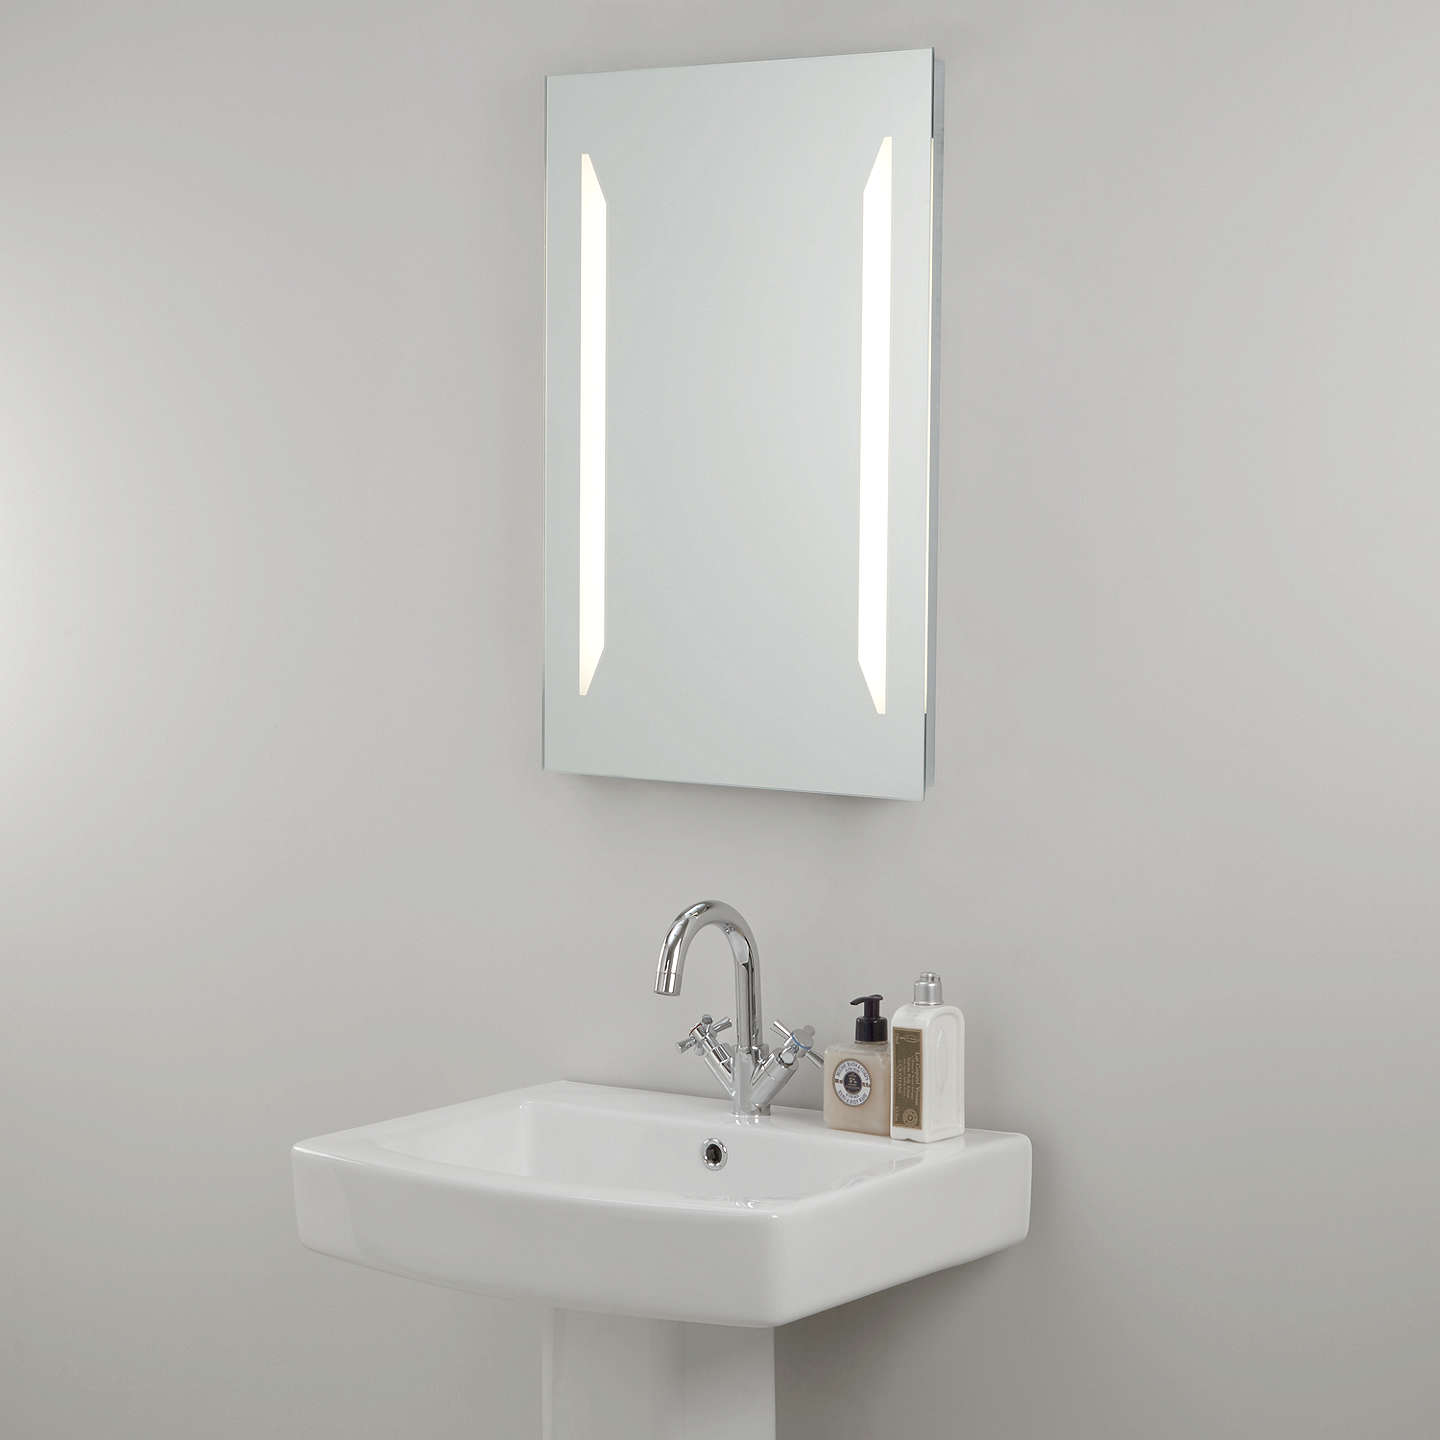 john lewis led frost illuminated bathroom mirror at john lewis. Black Bedroom Furniture Sets. Home Design Ideas